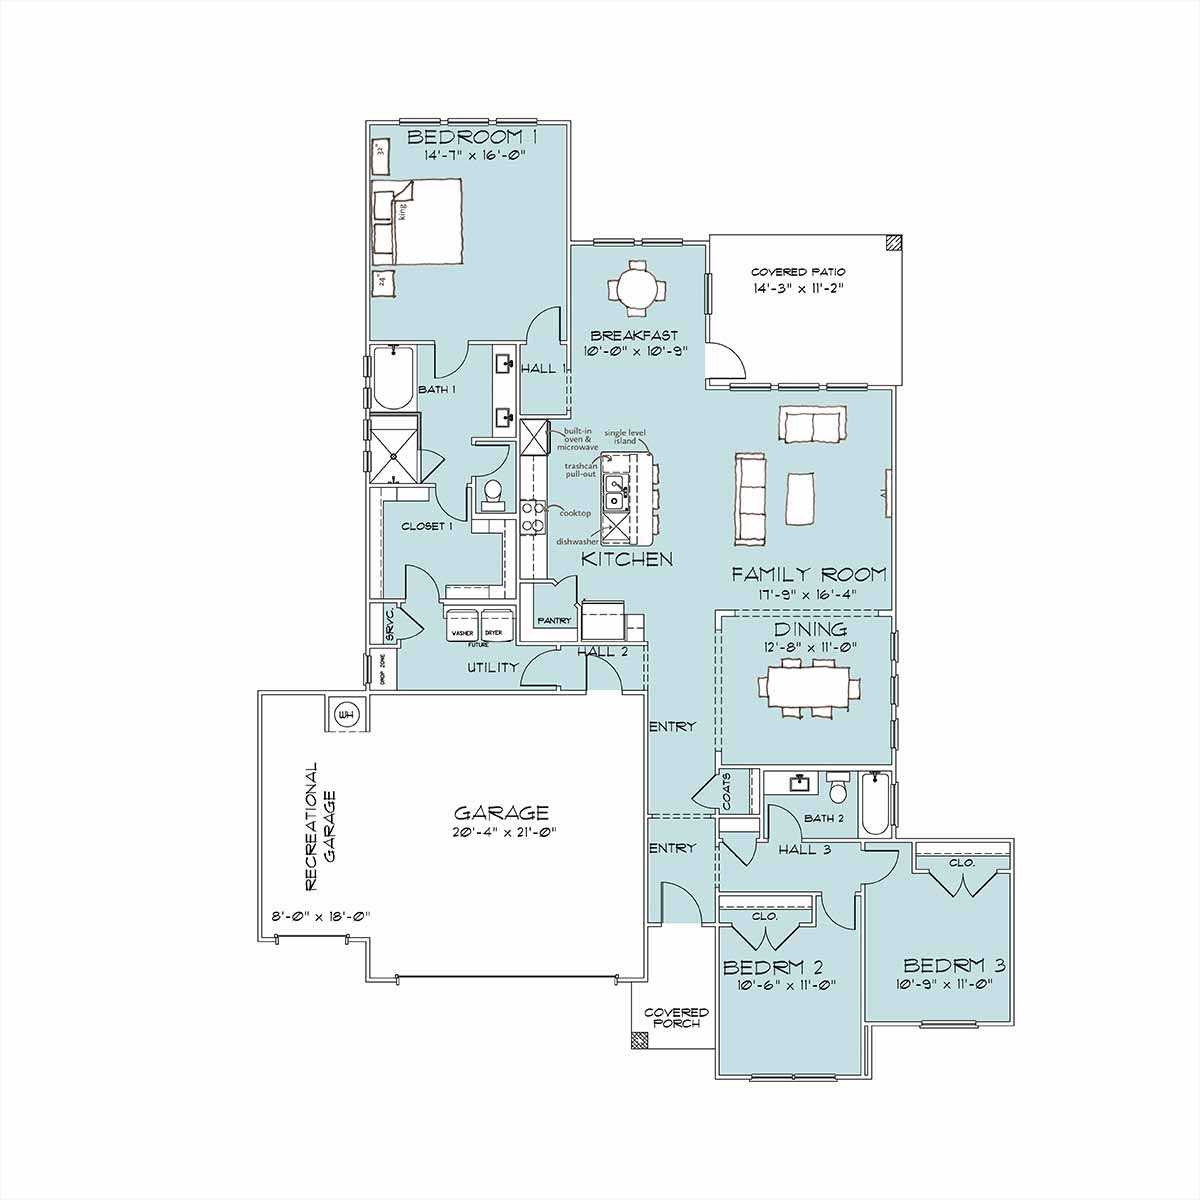 Davis Floor Plan by Omega Builders in River Place